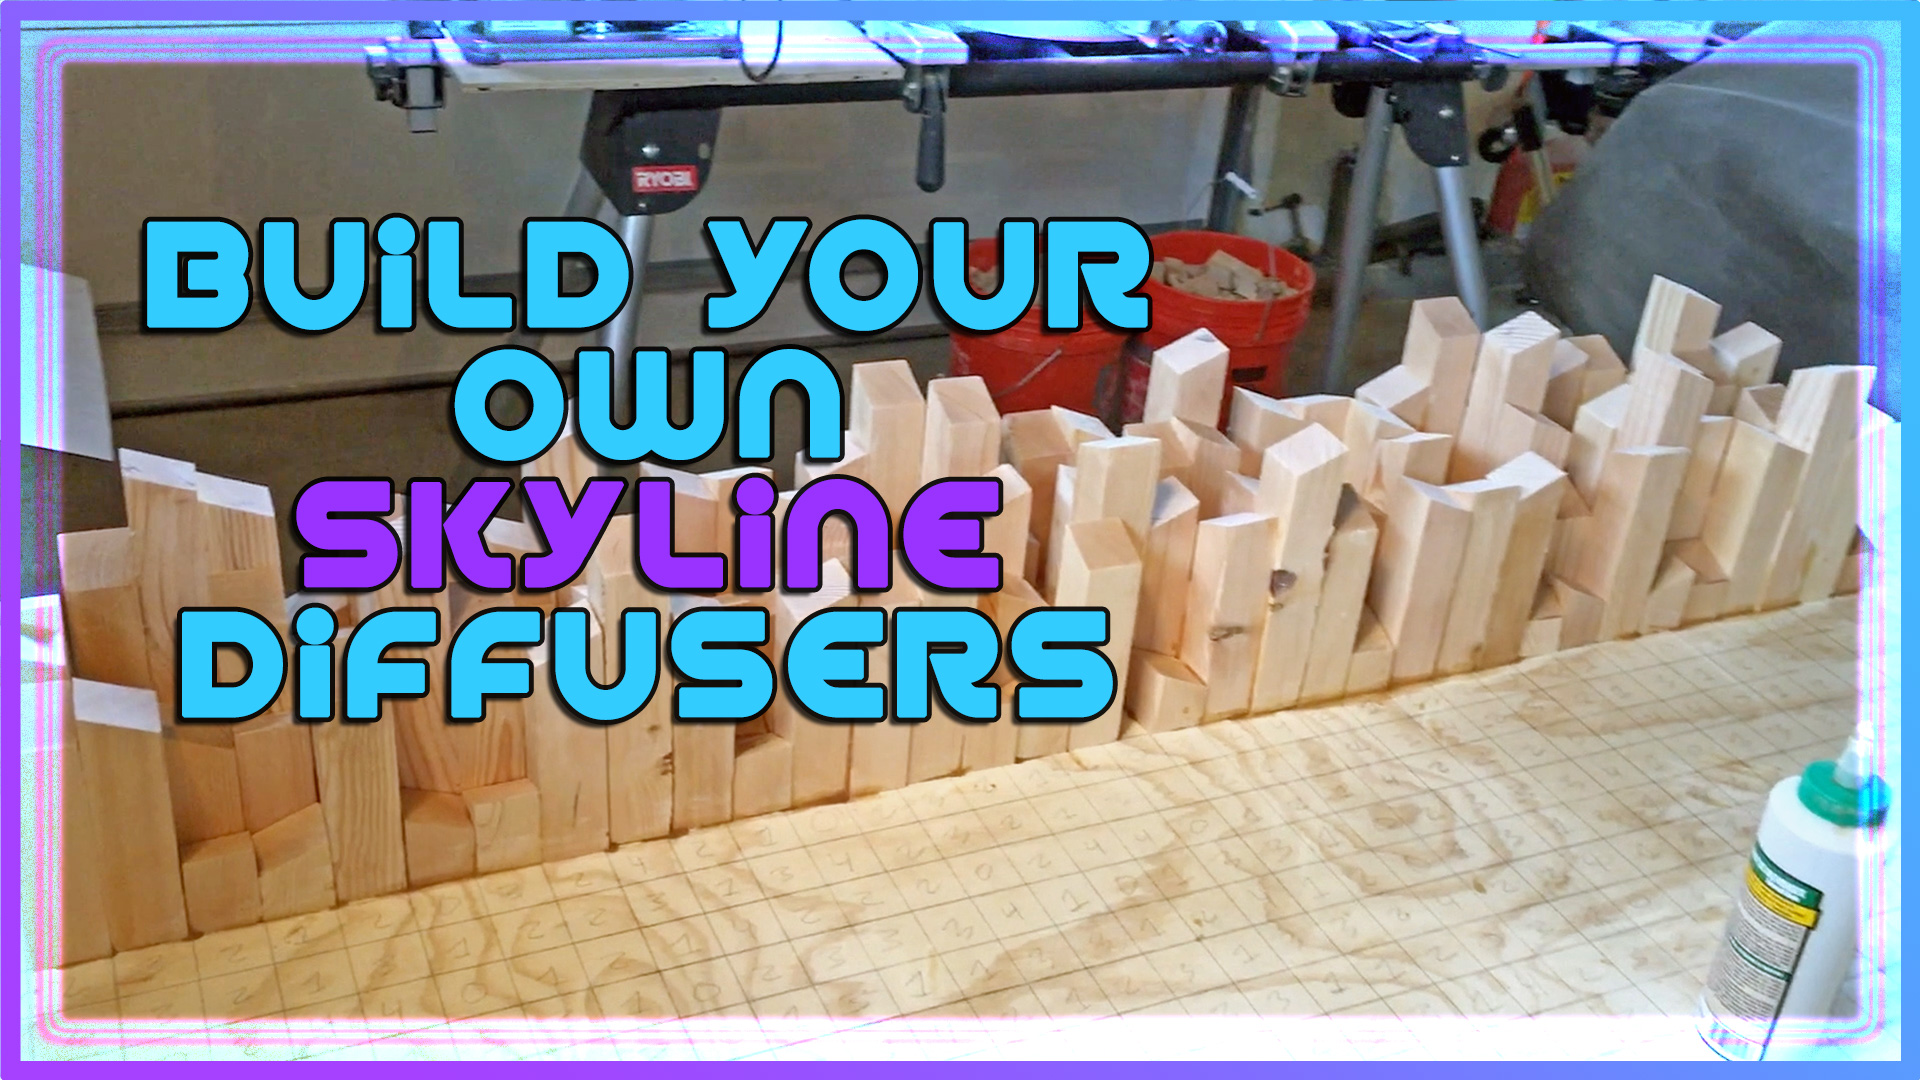 Video on how to build your own skyline sound diffuser